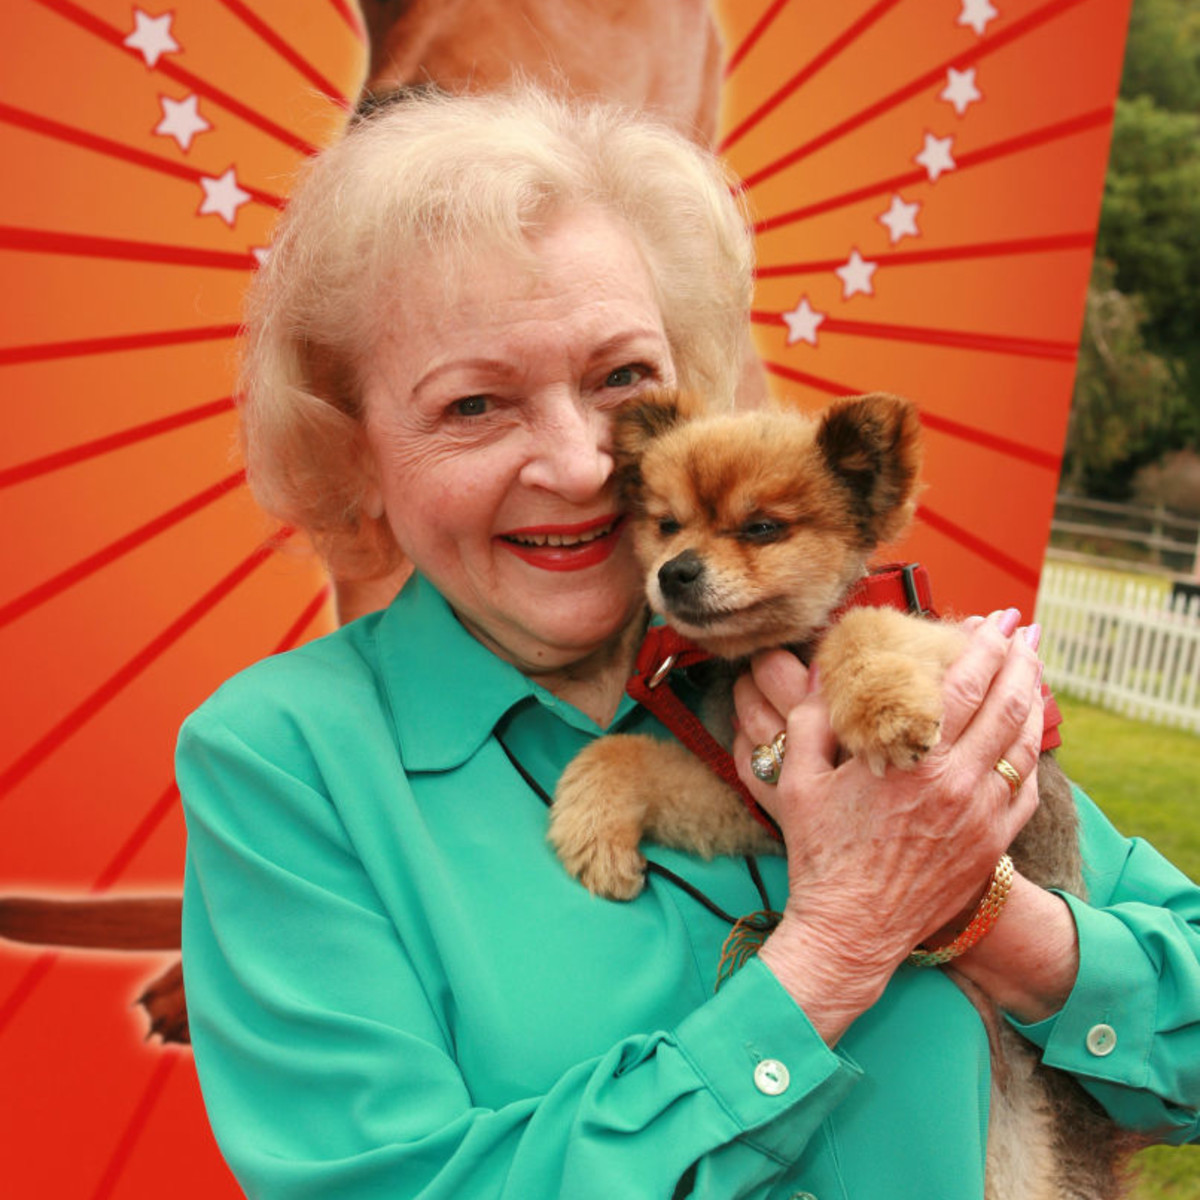 Animal lover Betty poses with a furry friend at the Peope's Choice Awards in 2012.